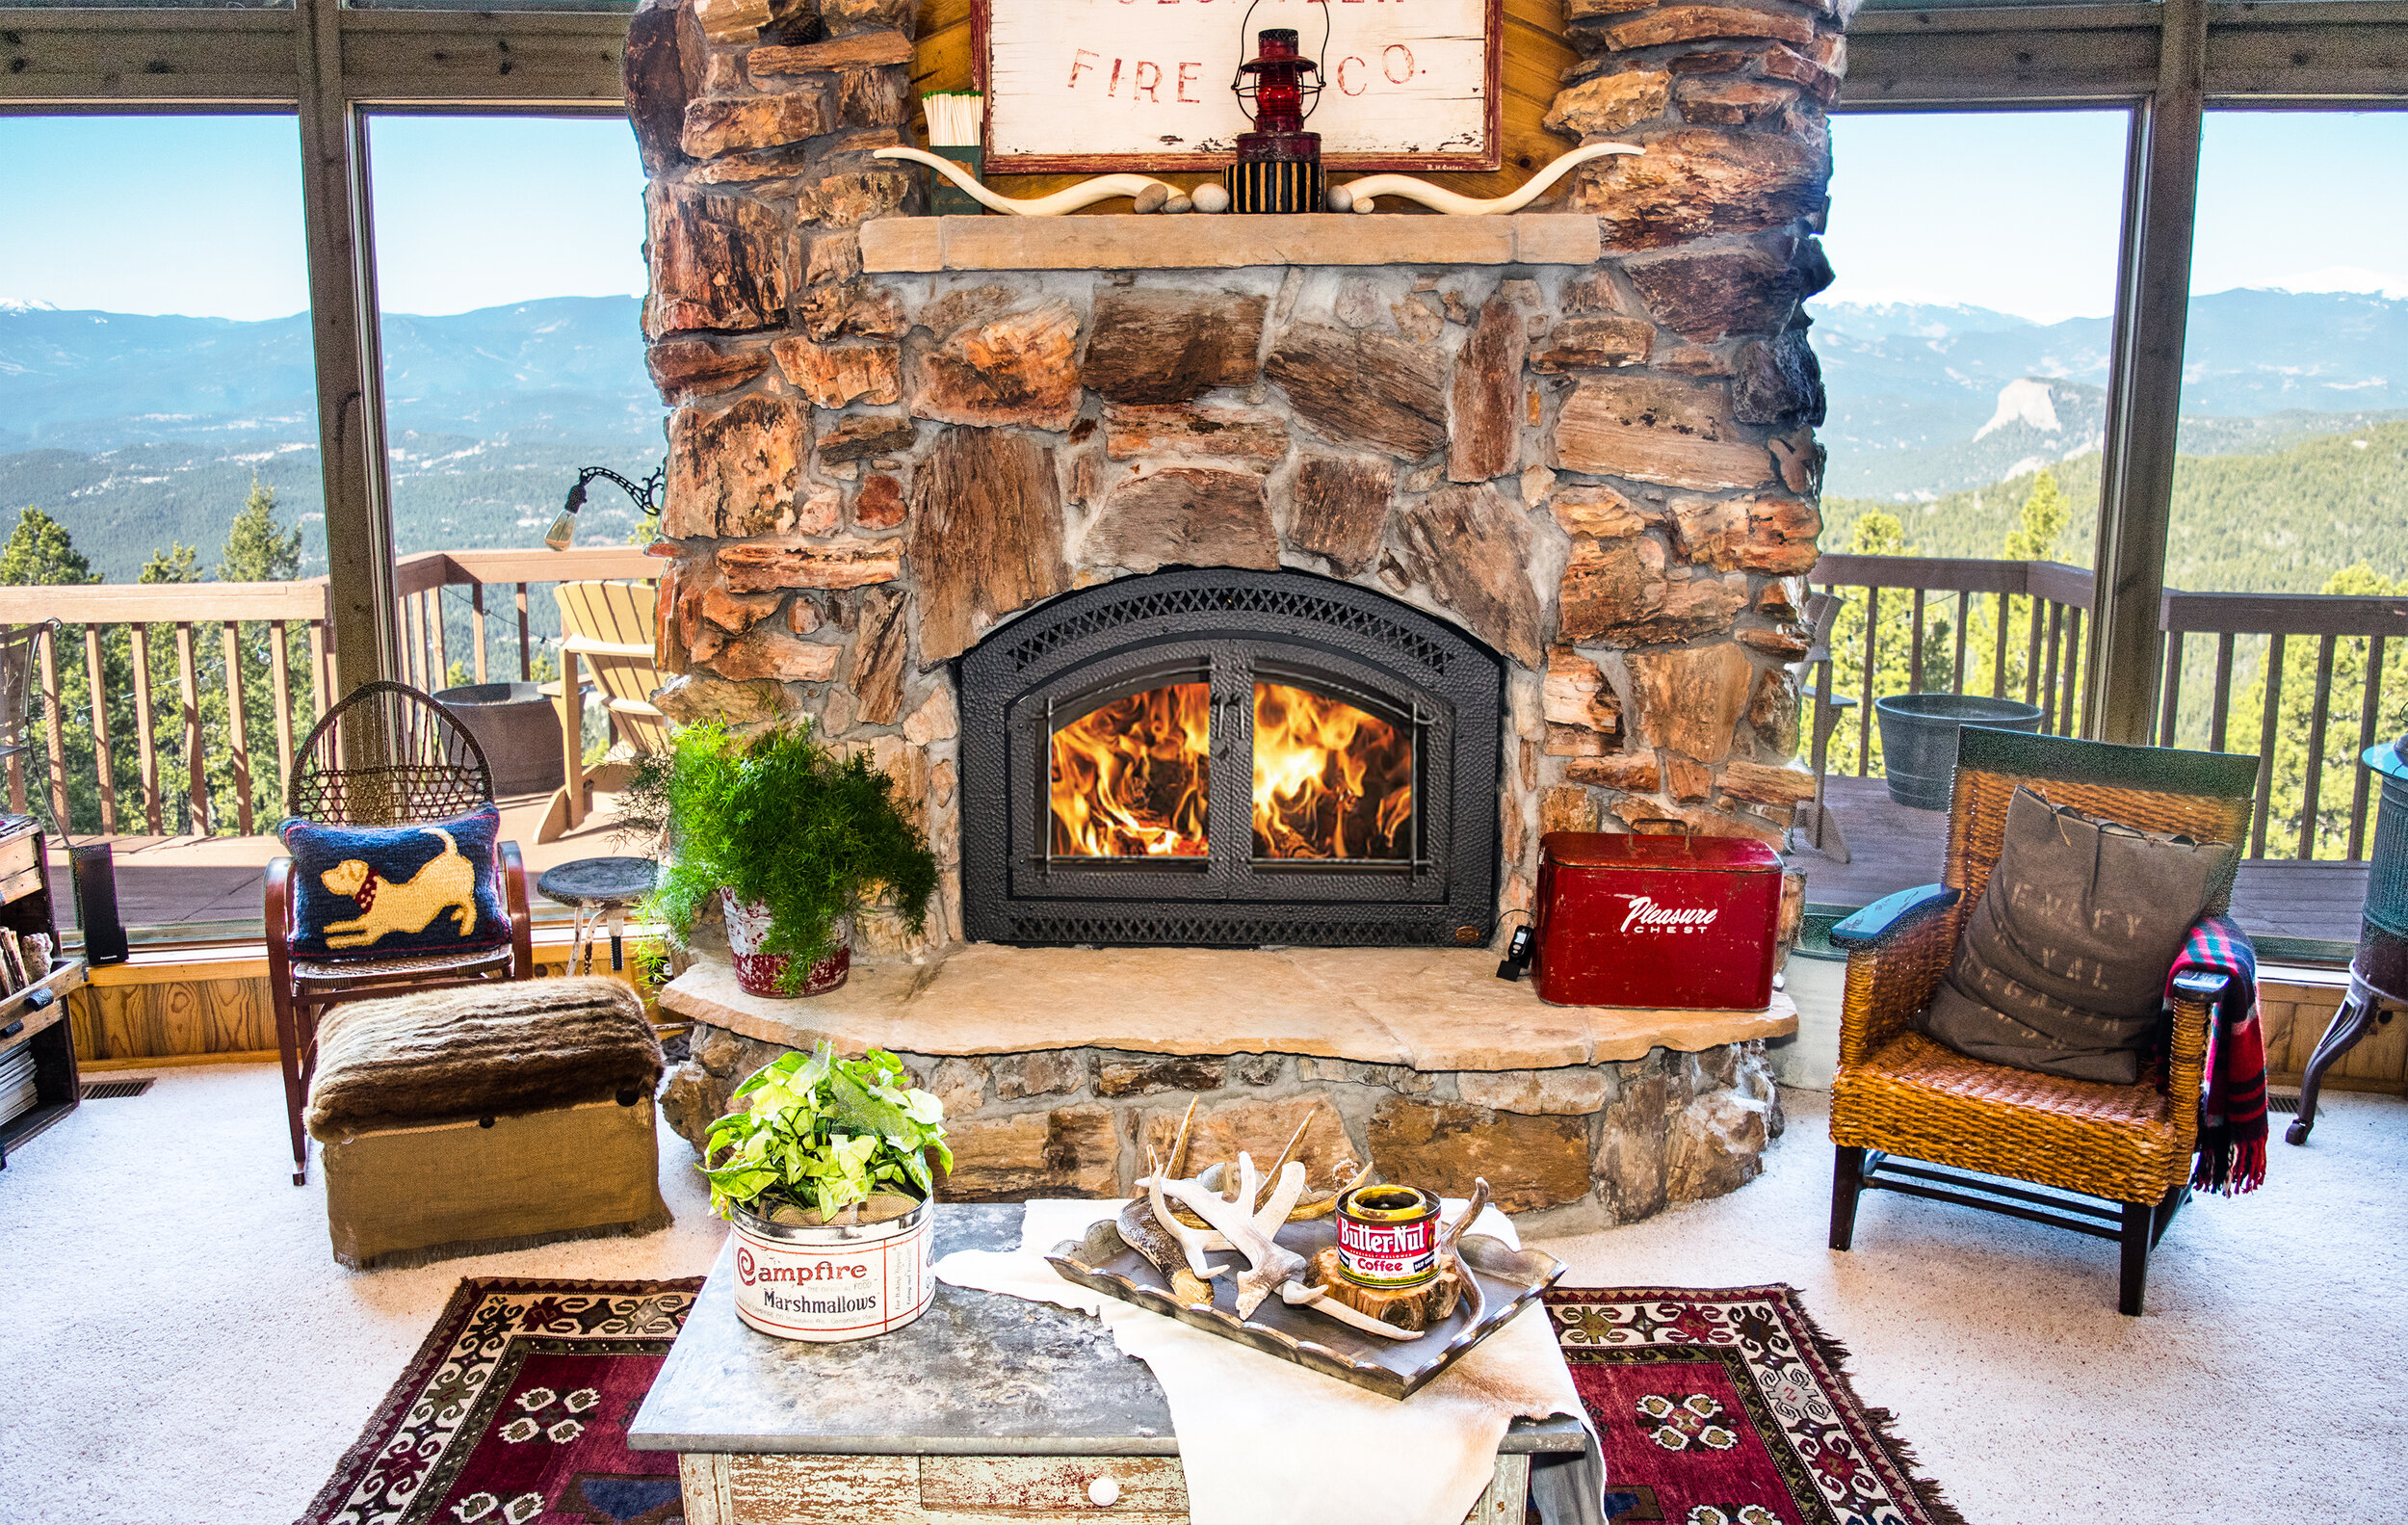 FireplaceX 44 Elite in a tradtional-style fireplace installation with a view of the mountains through the window.